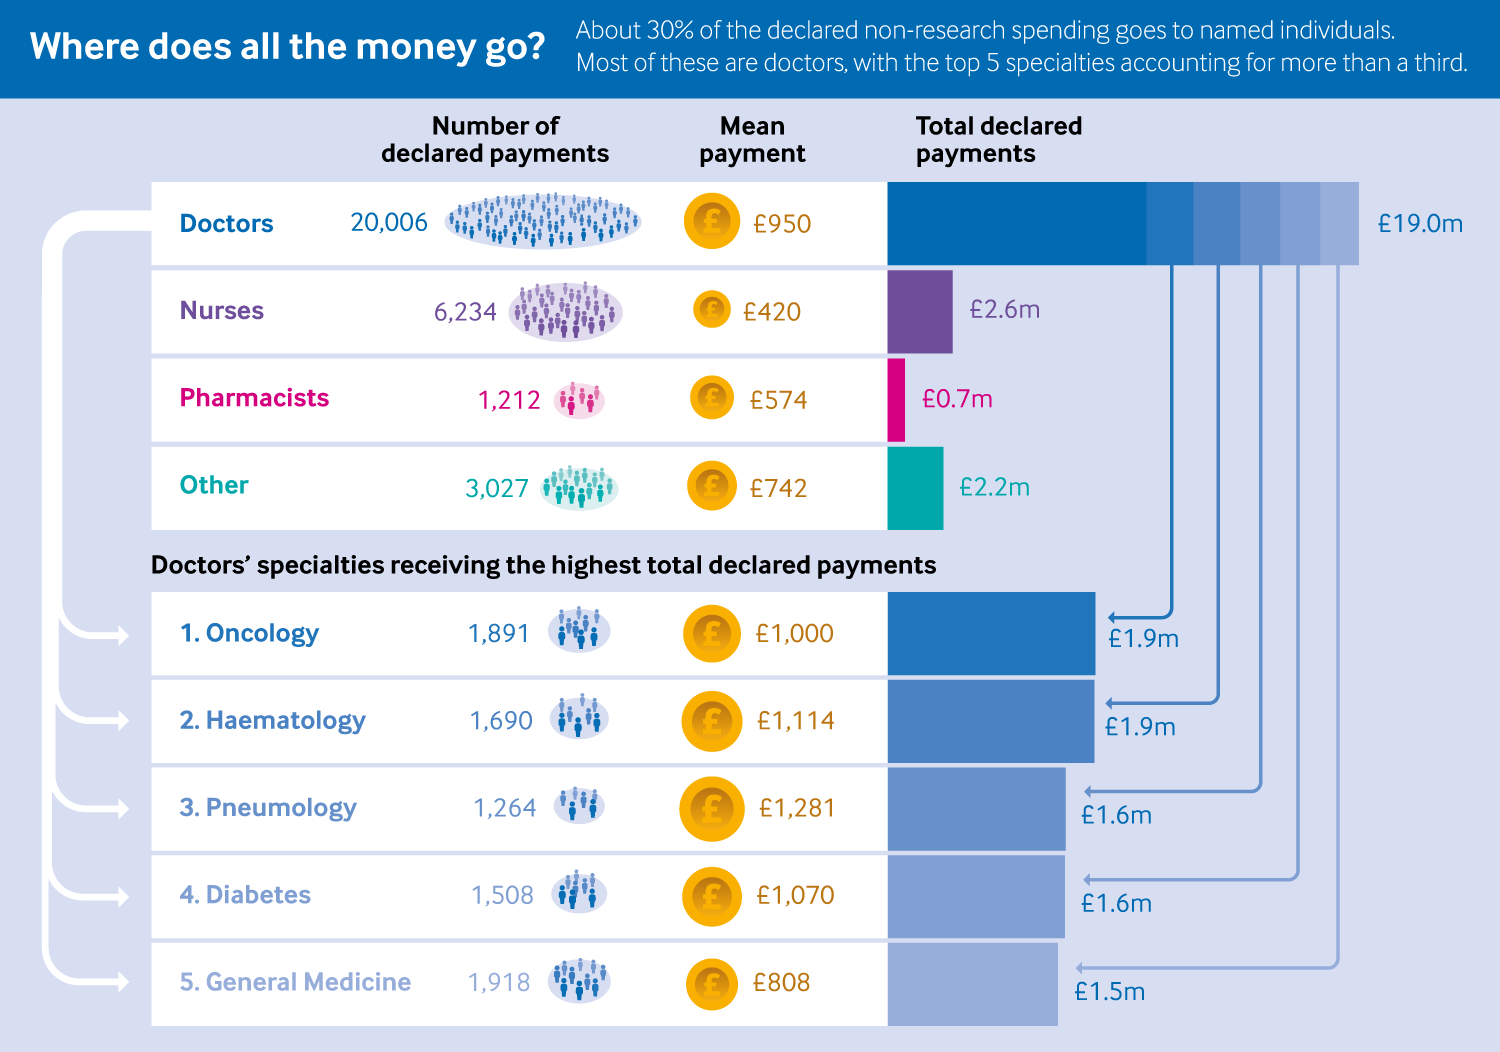 infographic showing that most of the named payments went to doctors (£19.0m of £24.5m), rather than Nurses (£2.6m), Pharmacists (£0.7m) and others (£2.2m). The top five specialties (Oncology, Haematology, Pneumology, Diabetes and General Medicine) received more than a third of this total.